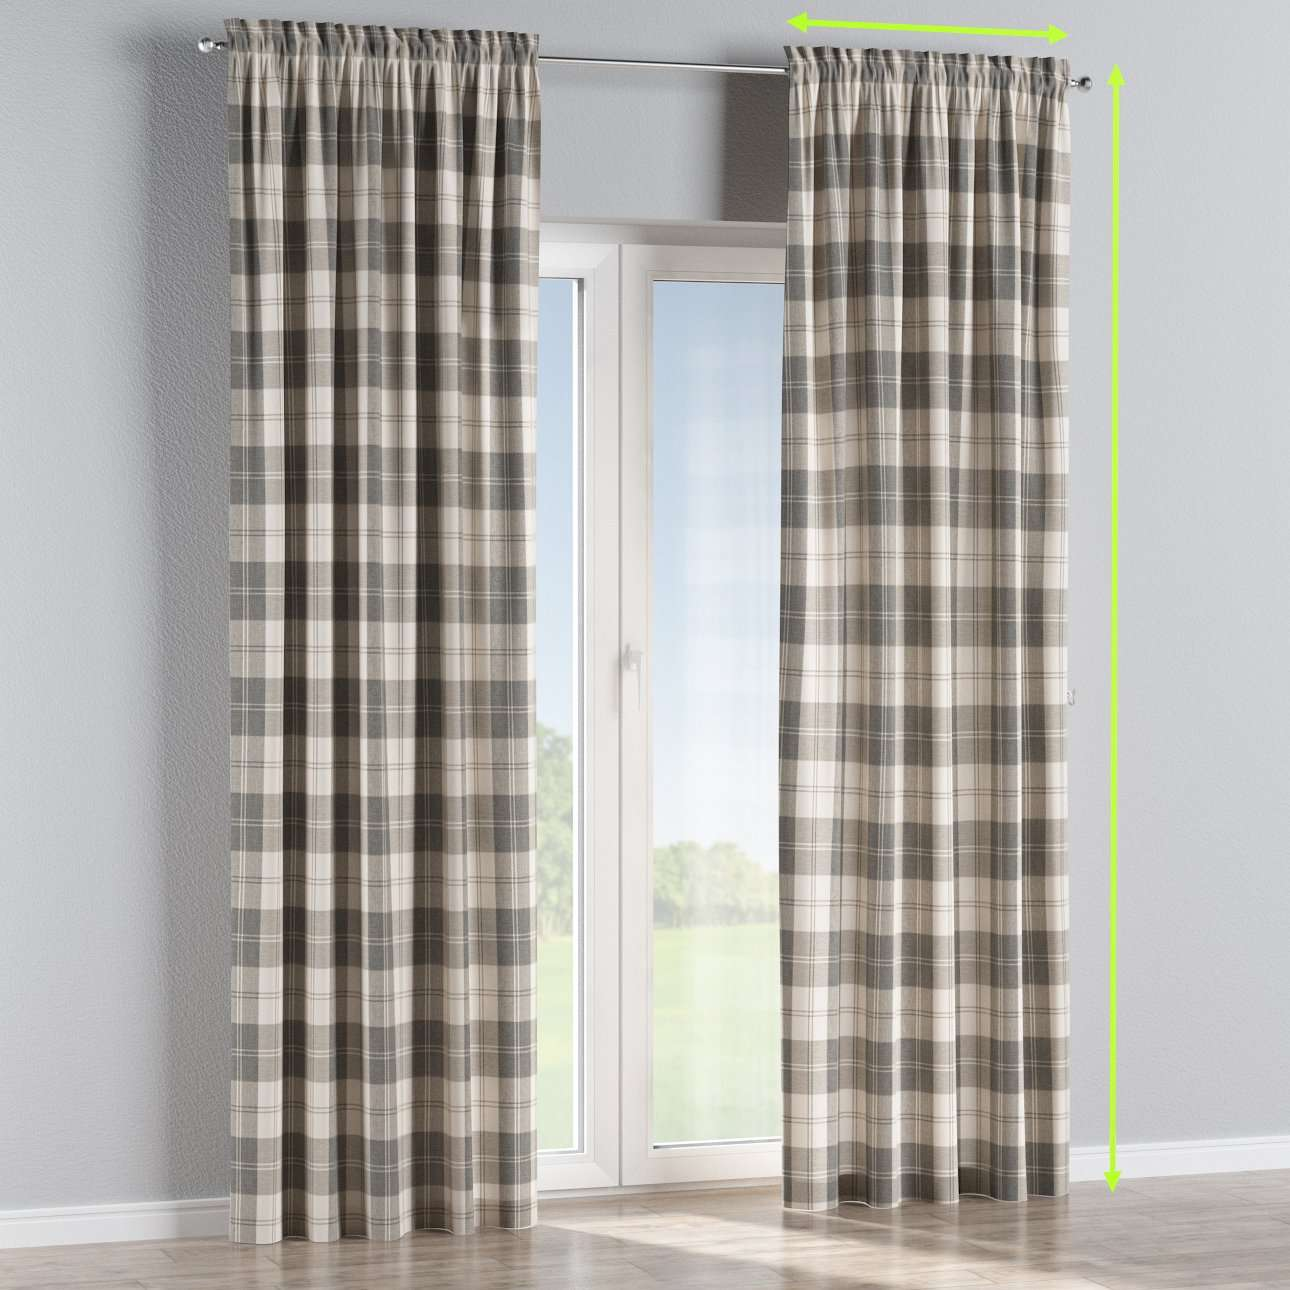 Slot and frill curtains in collection Edinburgh , fabric: 115-79